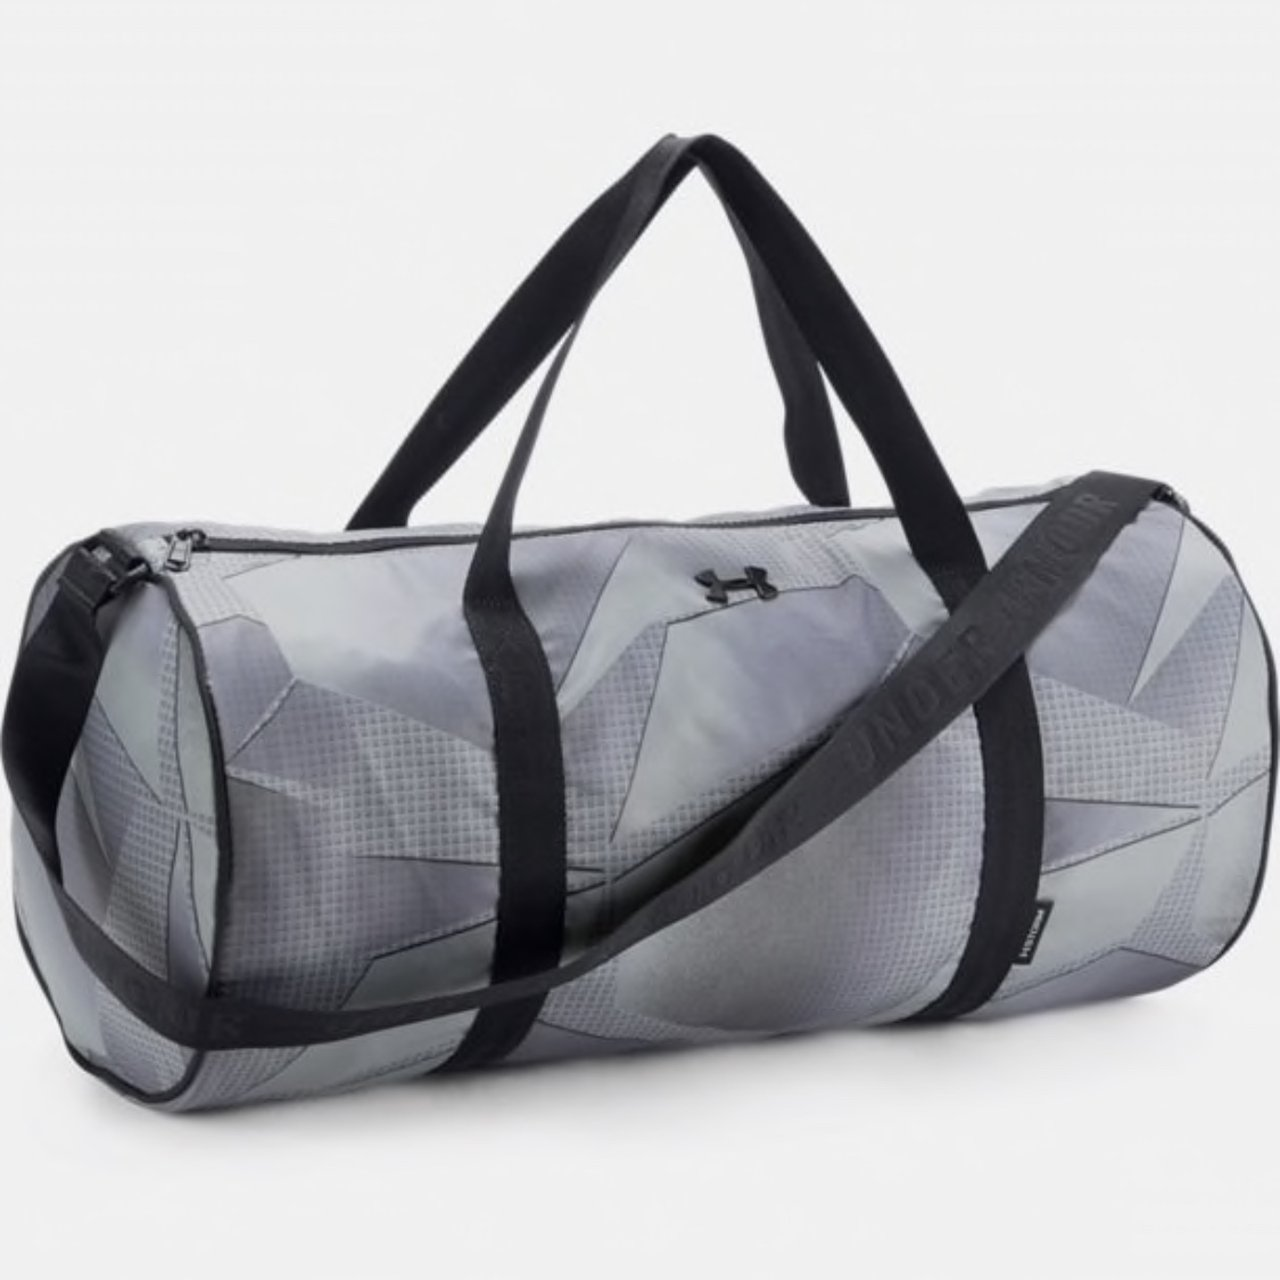 85504f6666bf Under Armour duffel bag. Great for use as a gym bag with - Depop